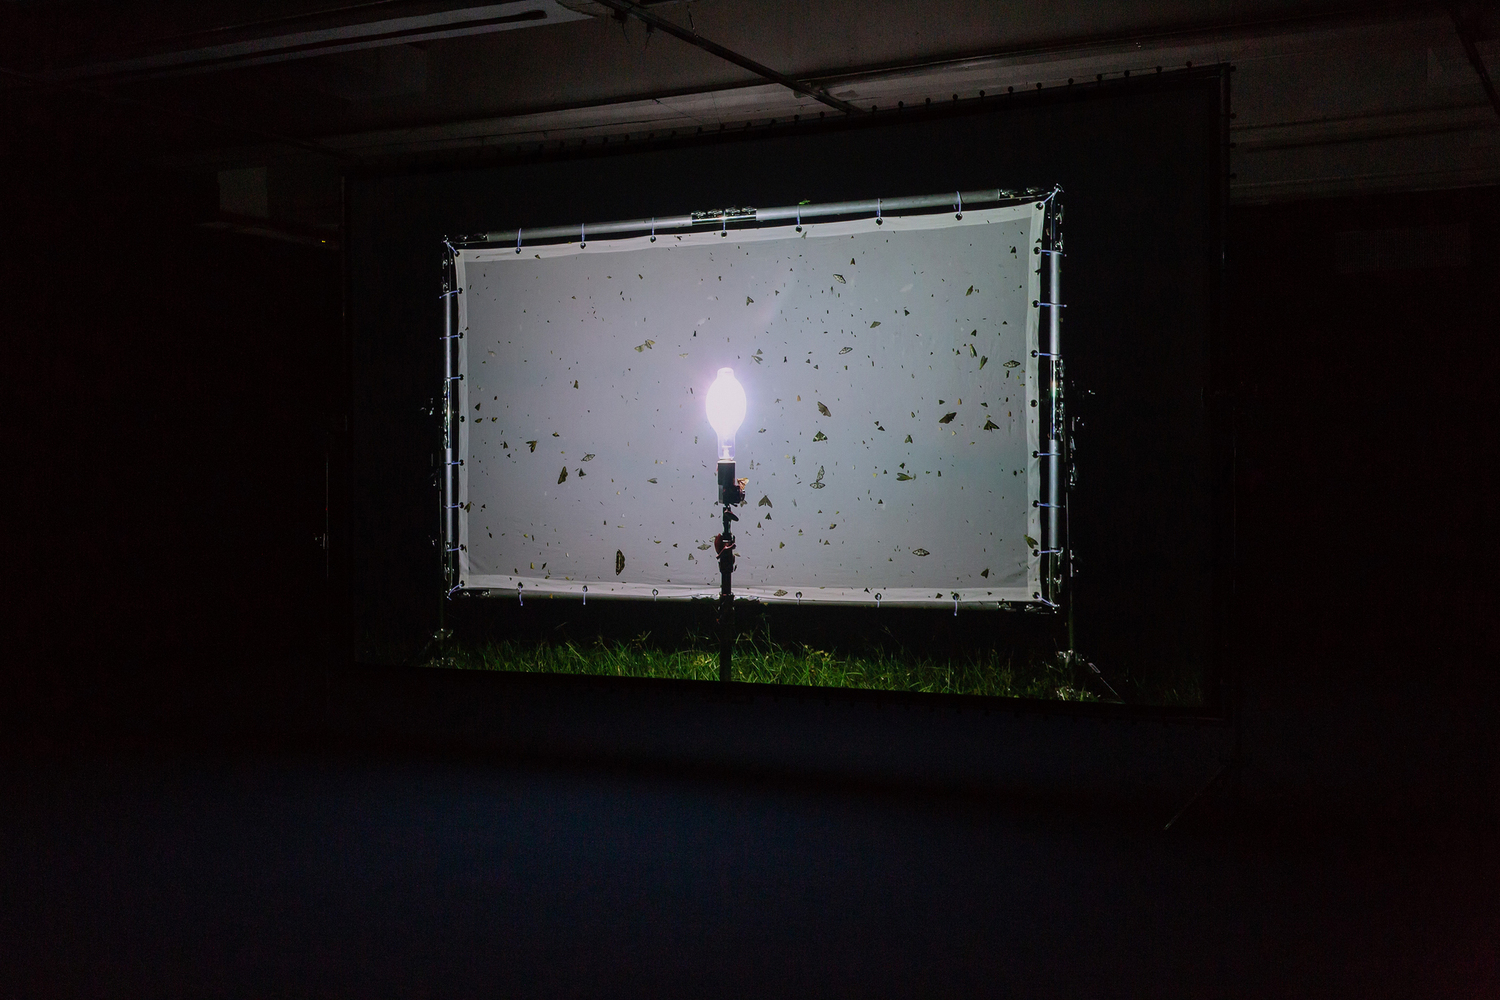 Blinded By The Light, 2018, Two-channel video, color, sound, butterfly frame, Installation view 'Taipei Biennial 2018 Post-Nature A Museum as an Ecosystem', Taipei Fine Arts Museum, Taipei, 2018